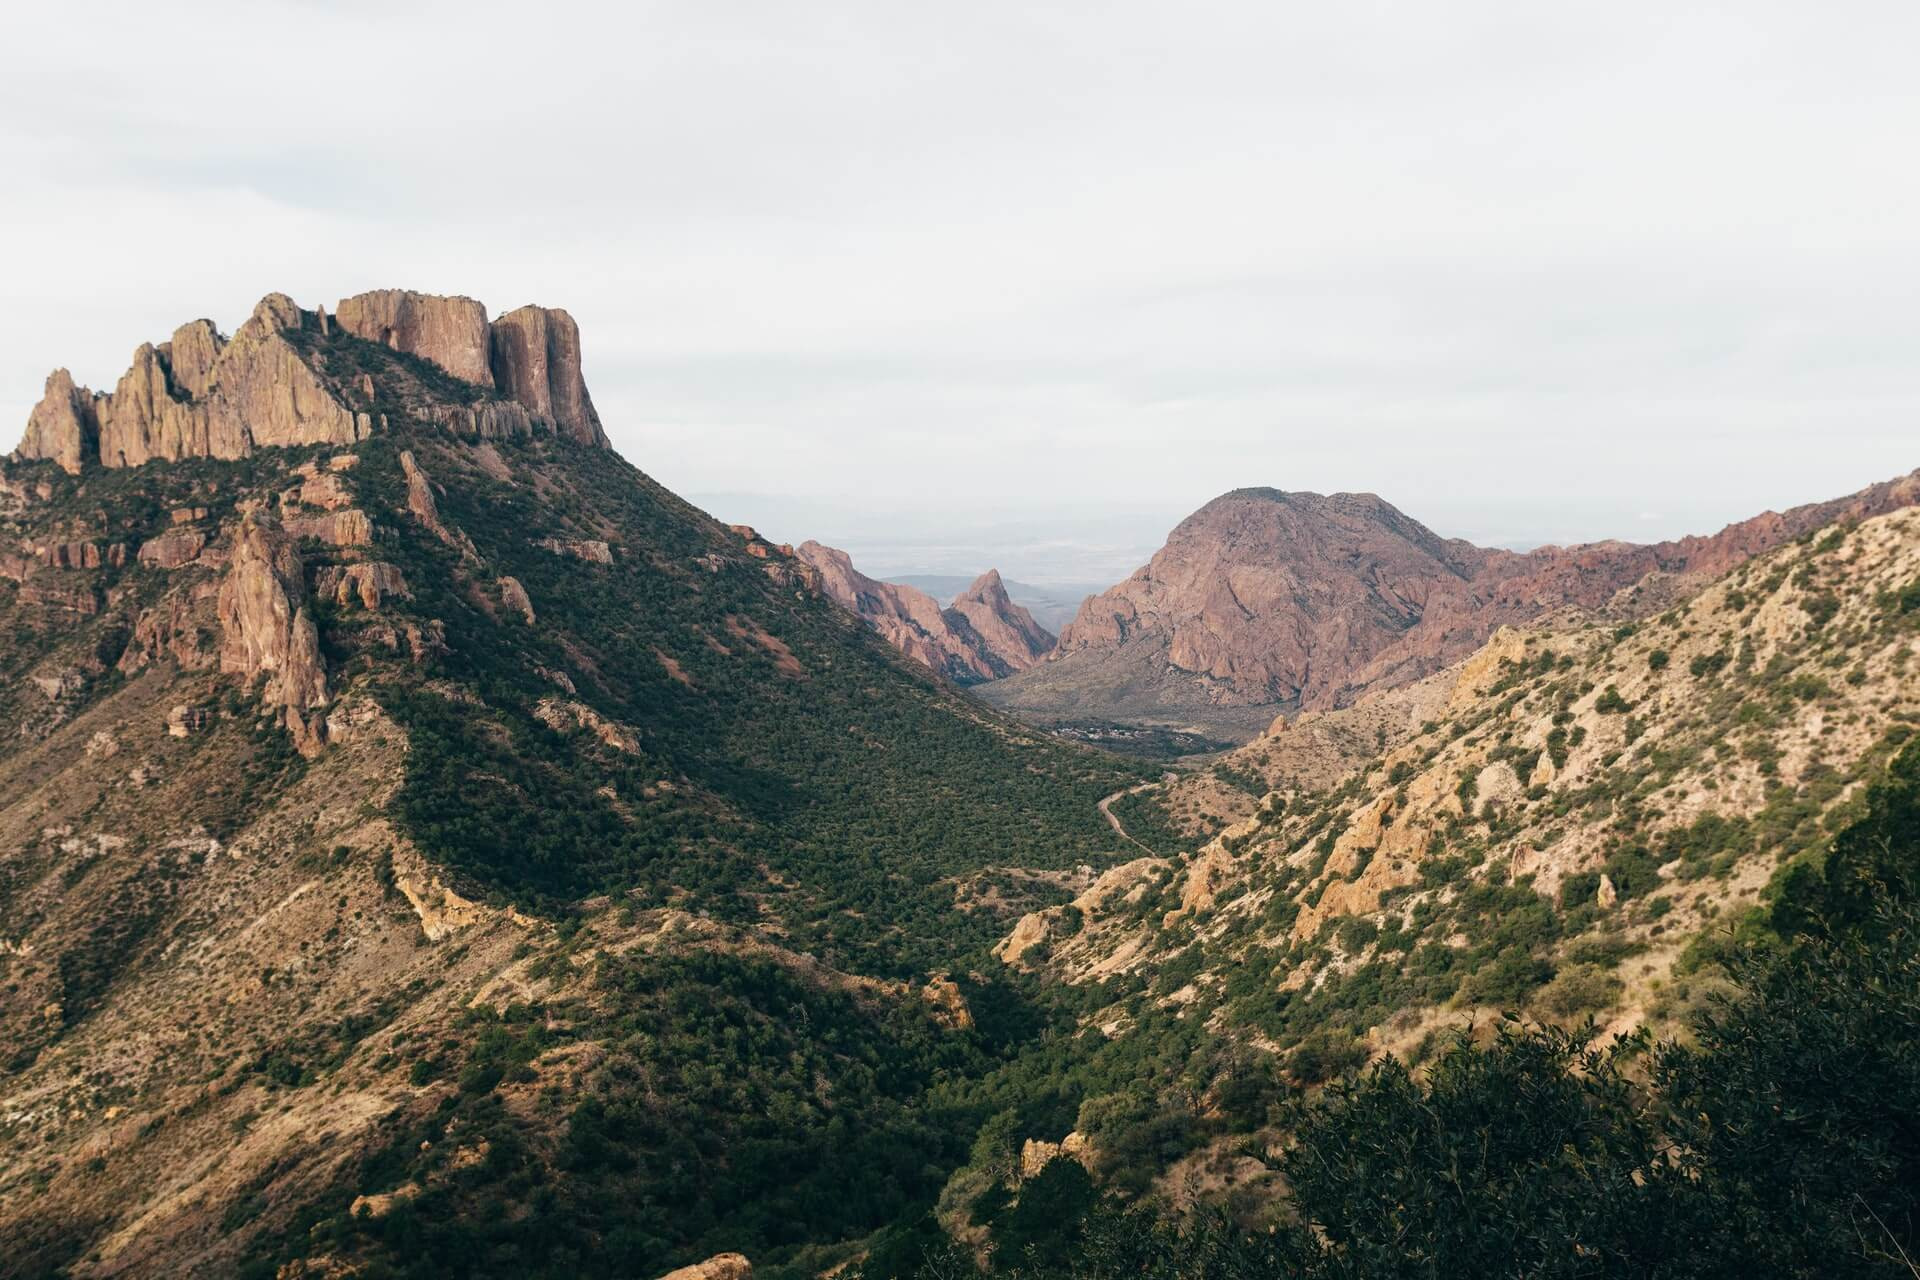 Scenic rugged mountains in the Big Bend